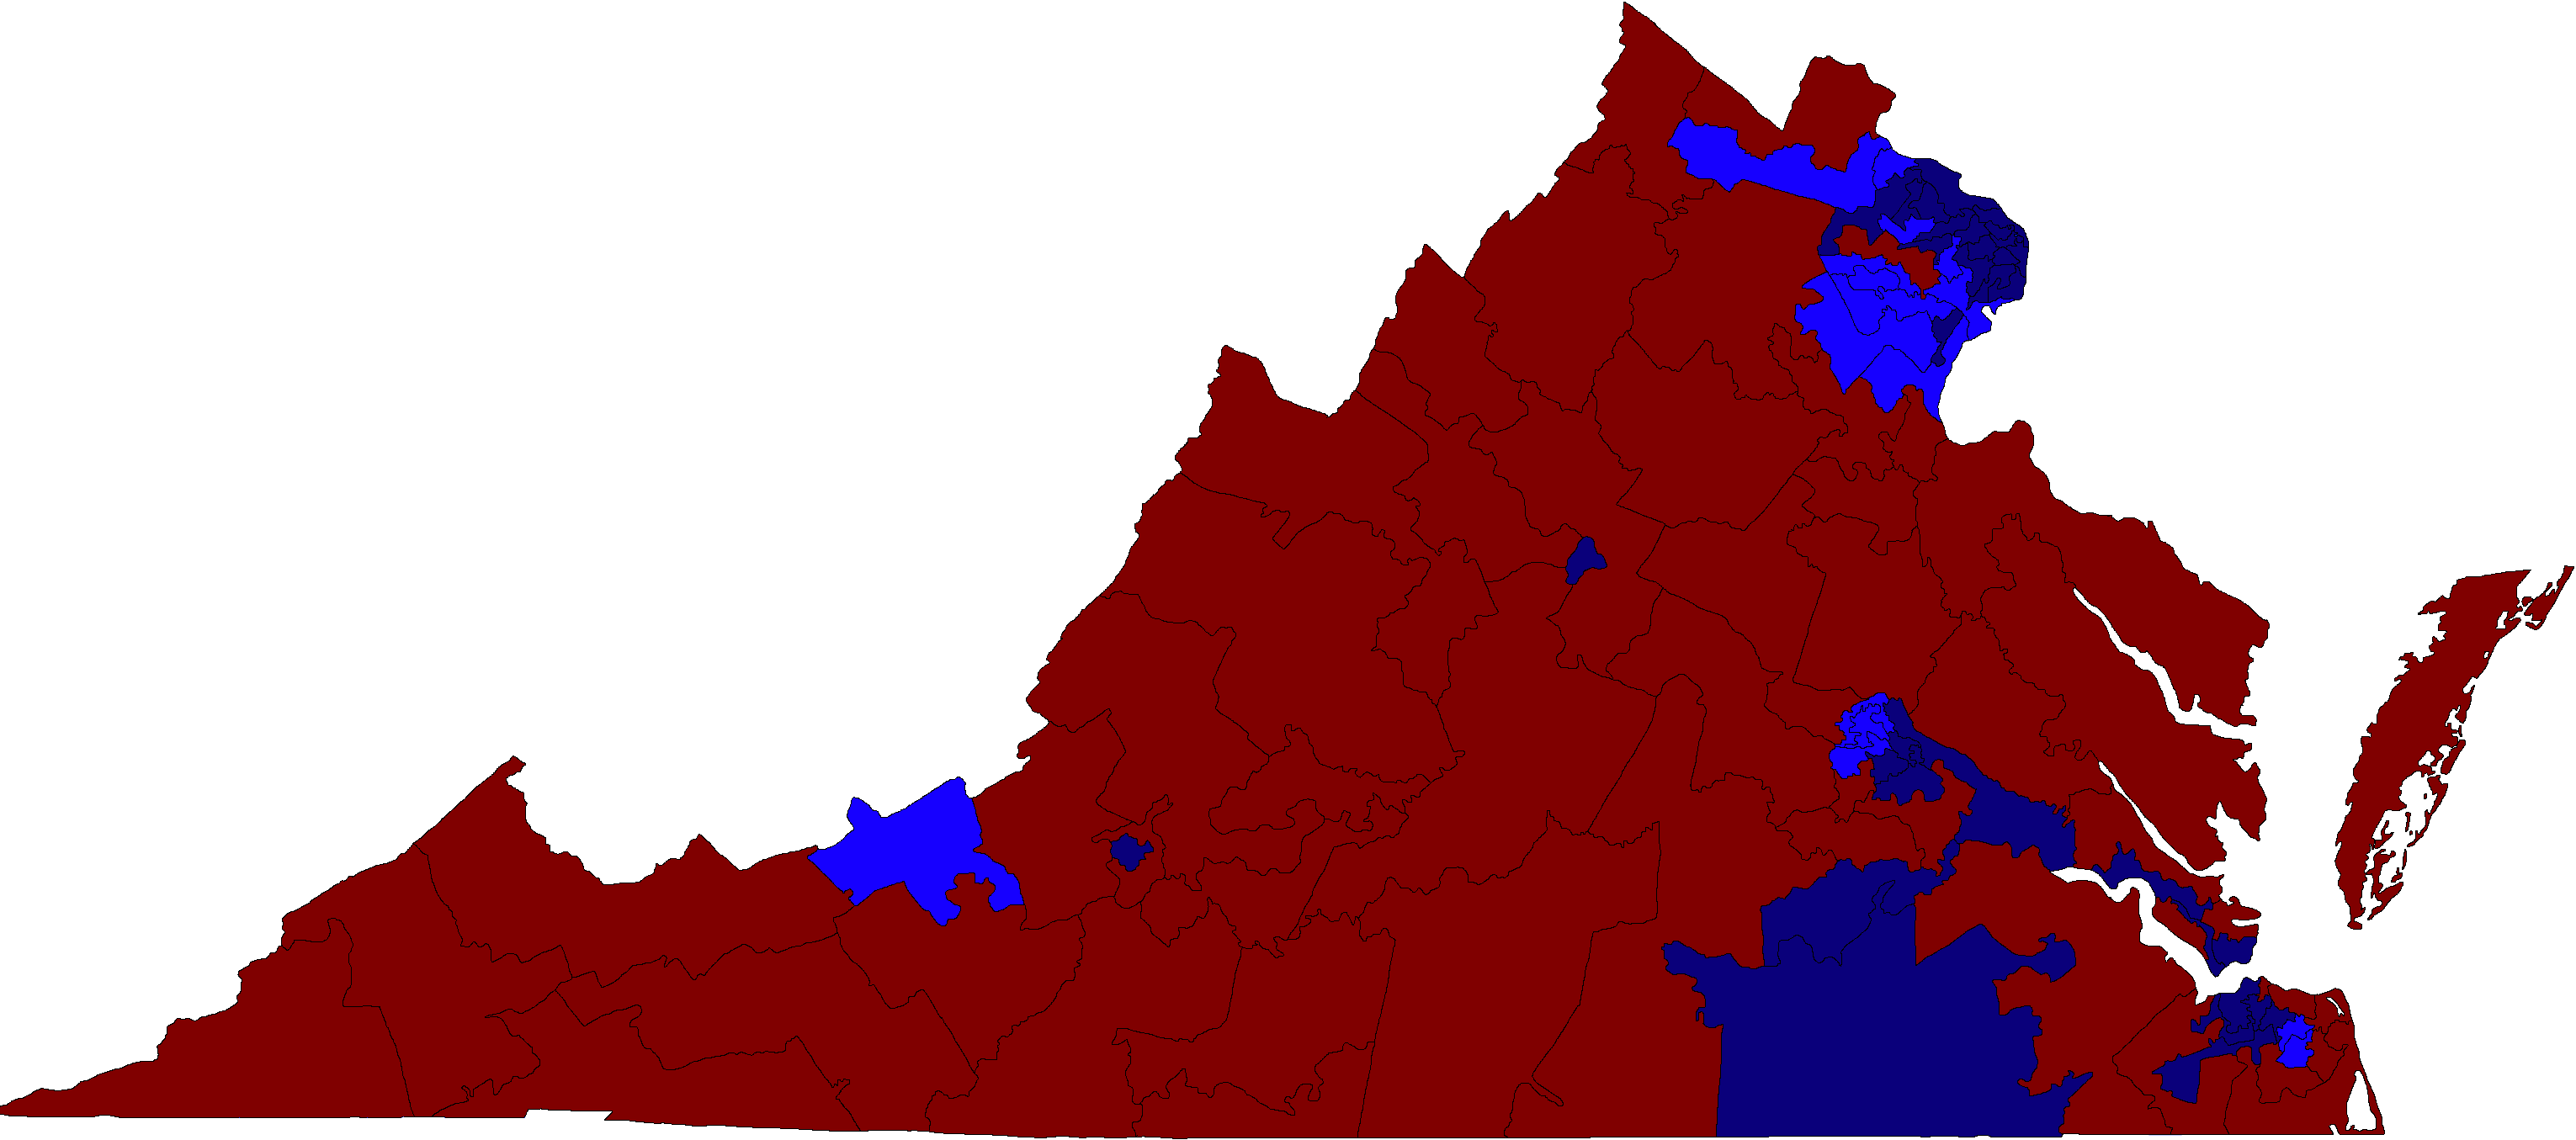 File:Virginia House of Delegates election results map 2017.